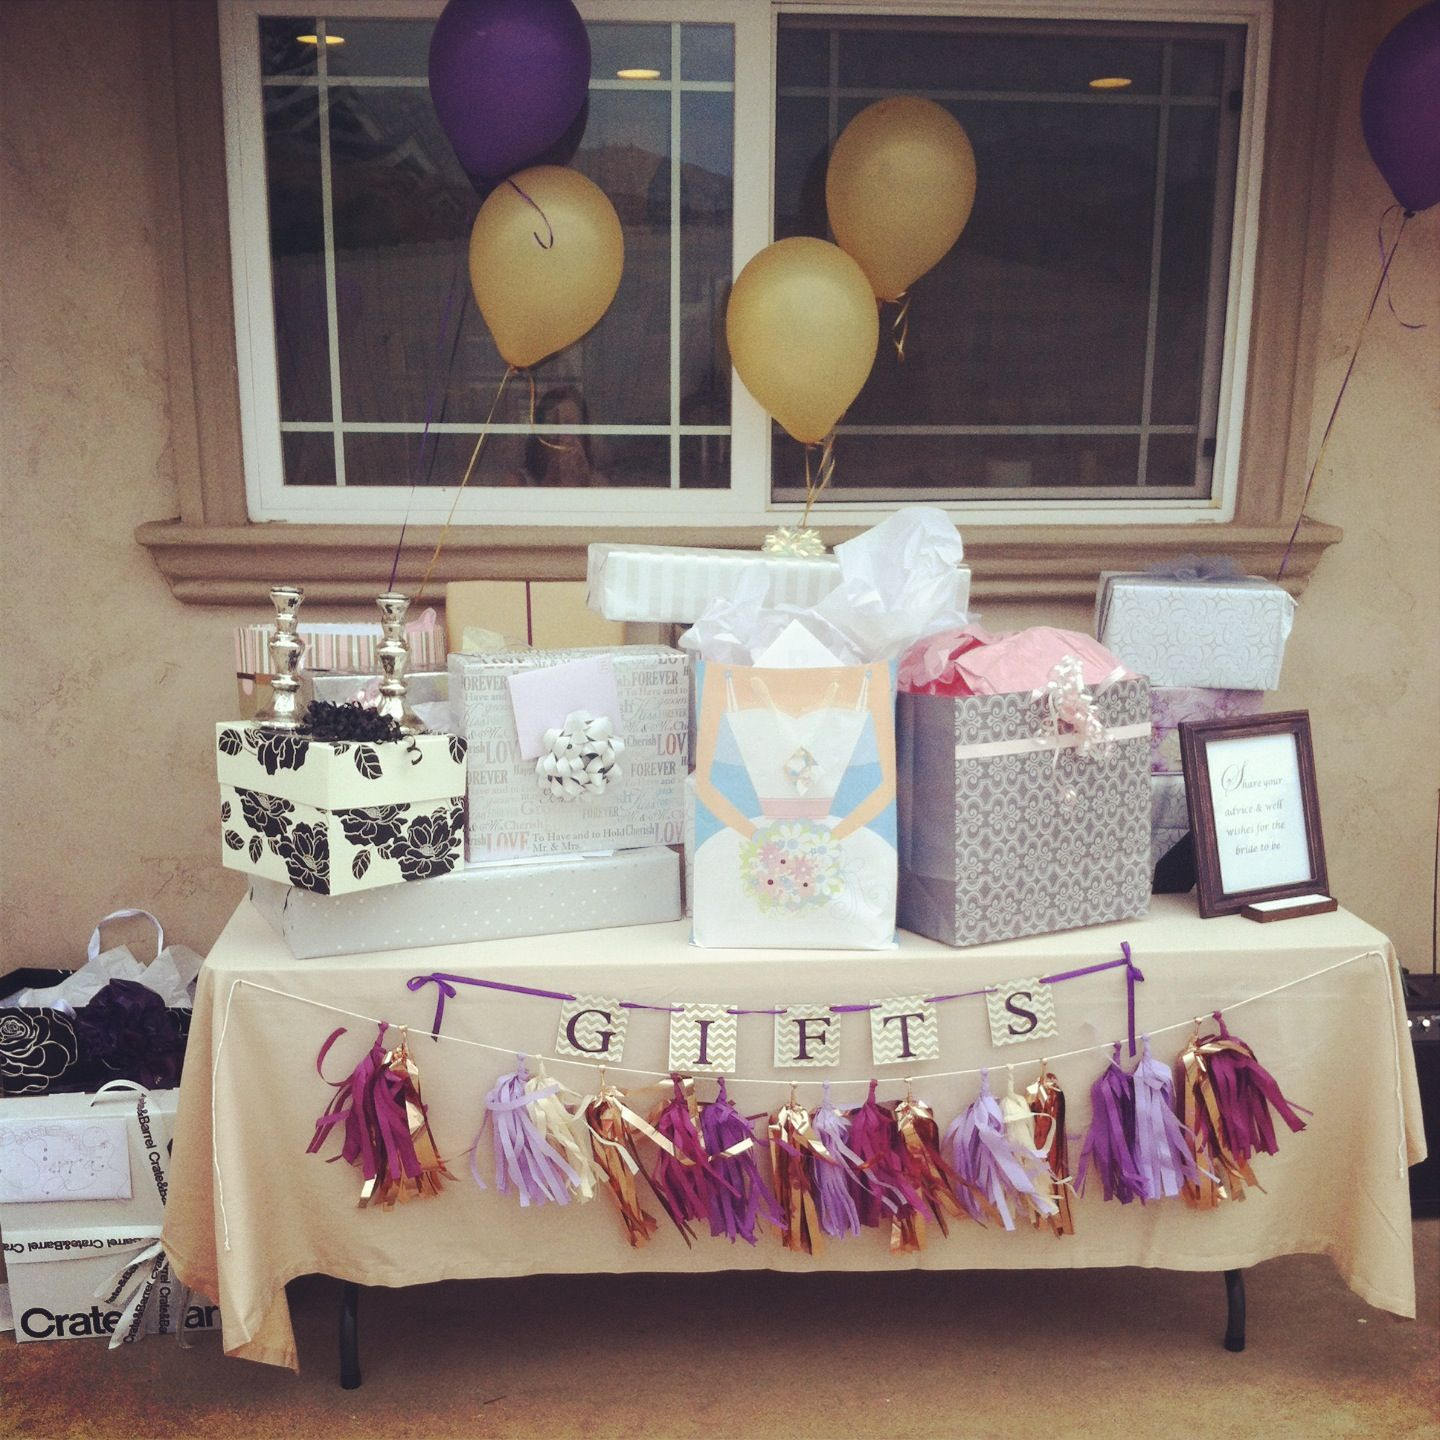 Wedding Gift Decoration Ideas: Gift Table! We Would Use Pink And Gold -bridal Shower